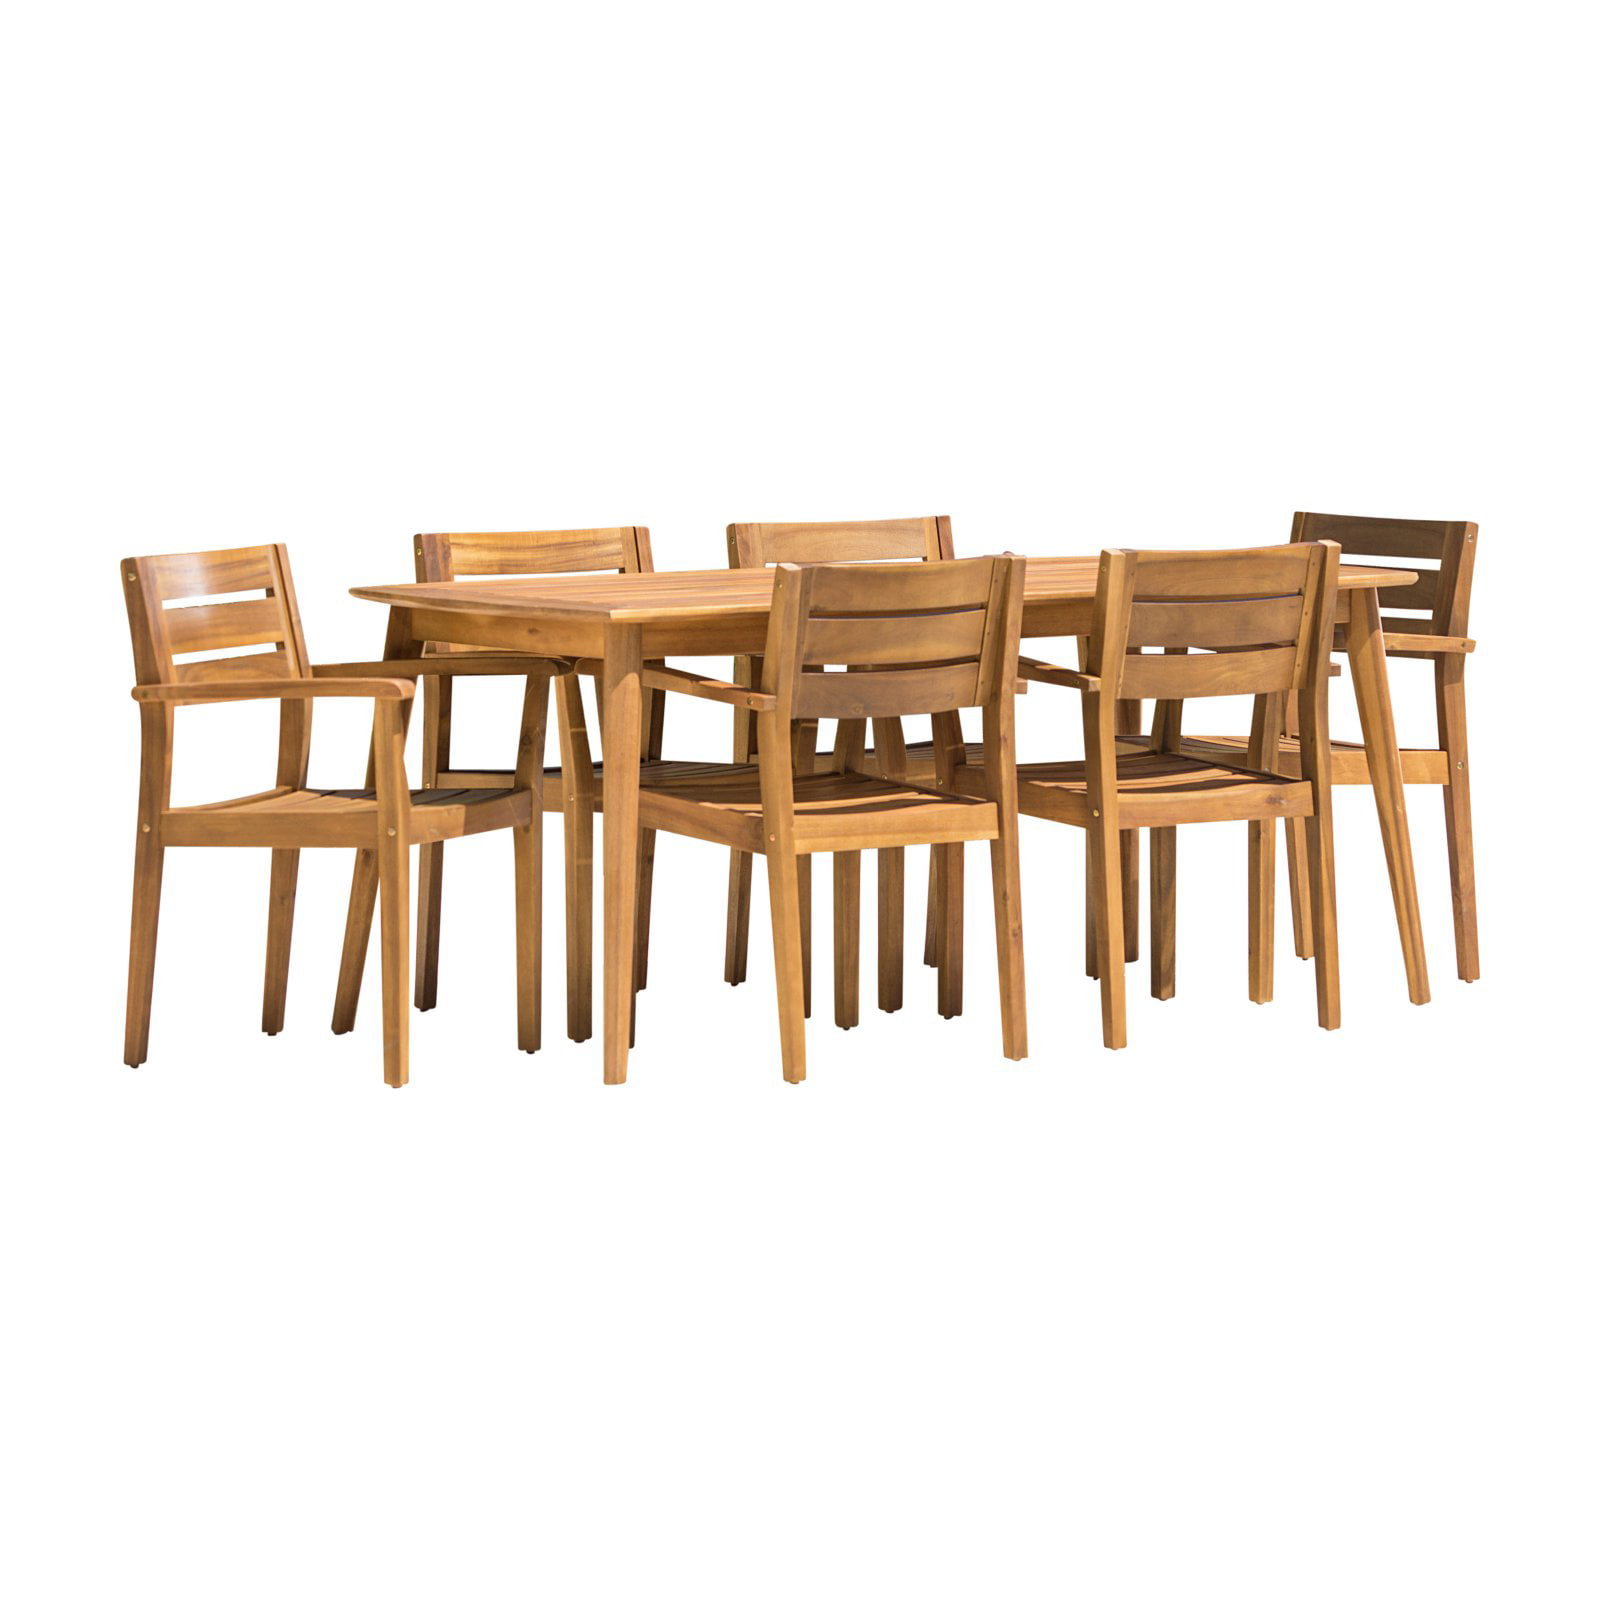 Christopher Knight Home Stamford Outdoor 7 Piece Rectangle Acacia Wood Dining Set By Walmart Com Walmart Com